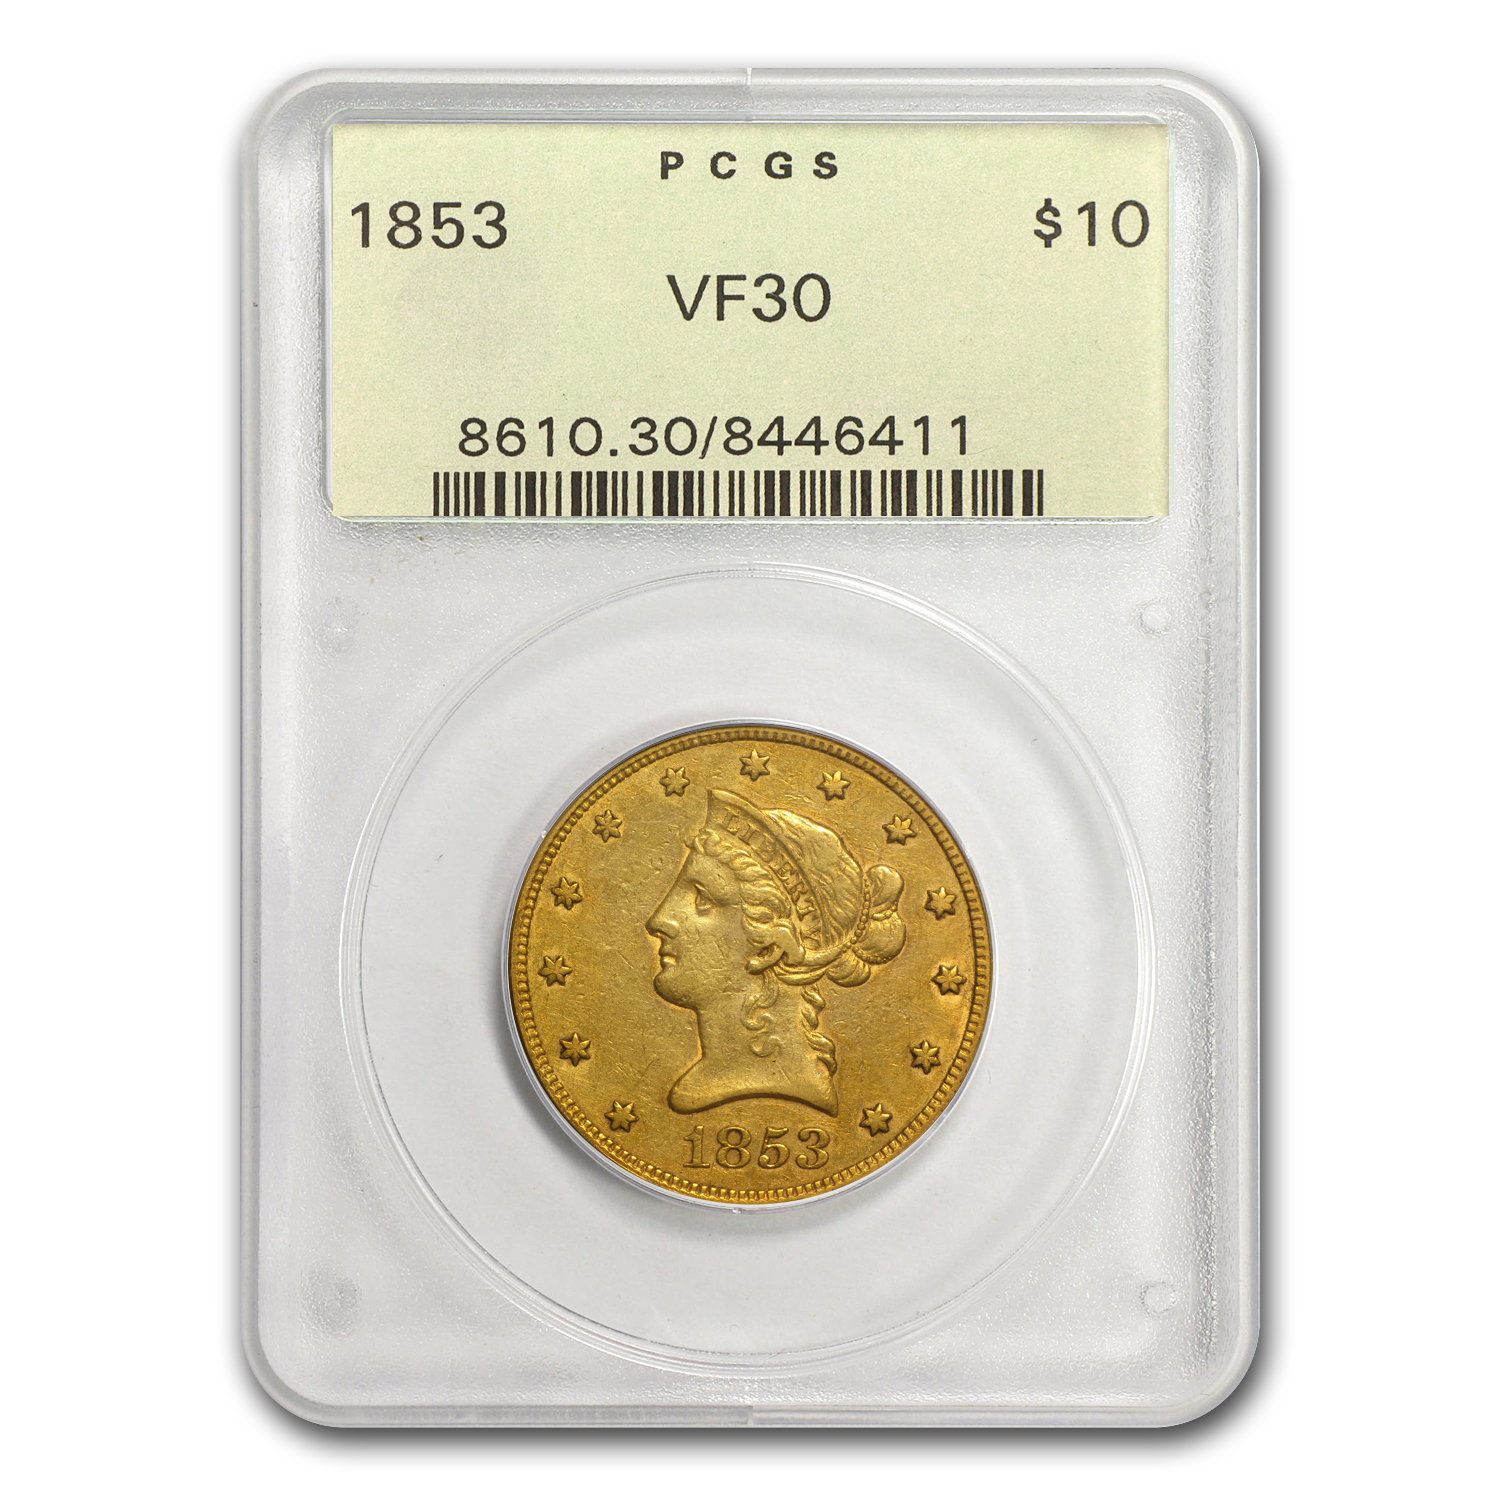 1853 $10 Liberty Gold Eagle VF-30 PCGS